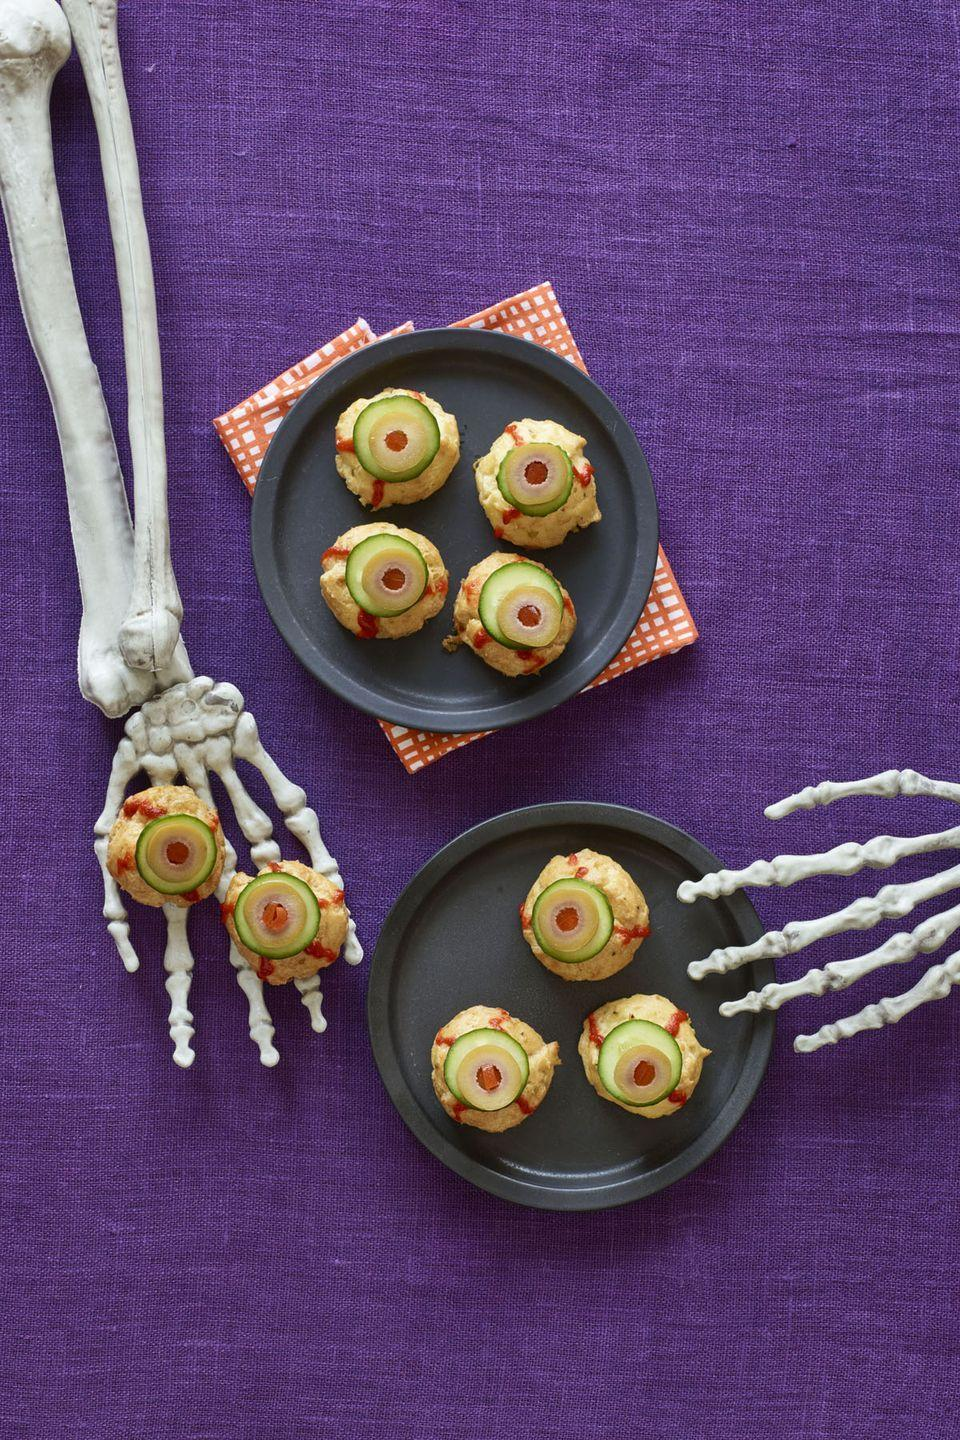 """<p>Top these cheese pastry puffs with slices of cucumber, olives, and squiggles of spicy Sriracha for a Halloween treat you won't be able to take your eyes off.</p><p><em><strong><a href=""""https://www.womansday.com/food-recipes/recipes/a60165/bitesize-eyeballs-recipe/"""" rel=""""nofollow noopener"""" target=""""_blank"""" data-ylk=""""slk:Get the Bite-Size Eyeballs recipe."""" class=""""link rapid-noclick-resp"""">Get the Bite-Size Eyeballs recipe.</a></strong></em></p>"""